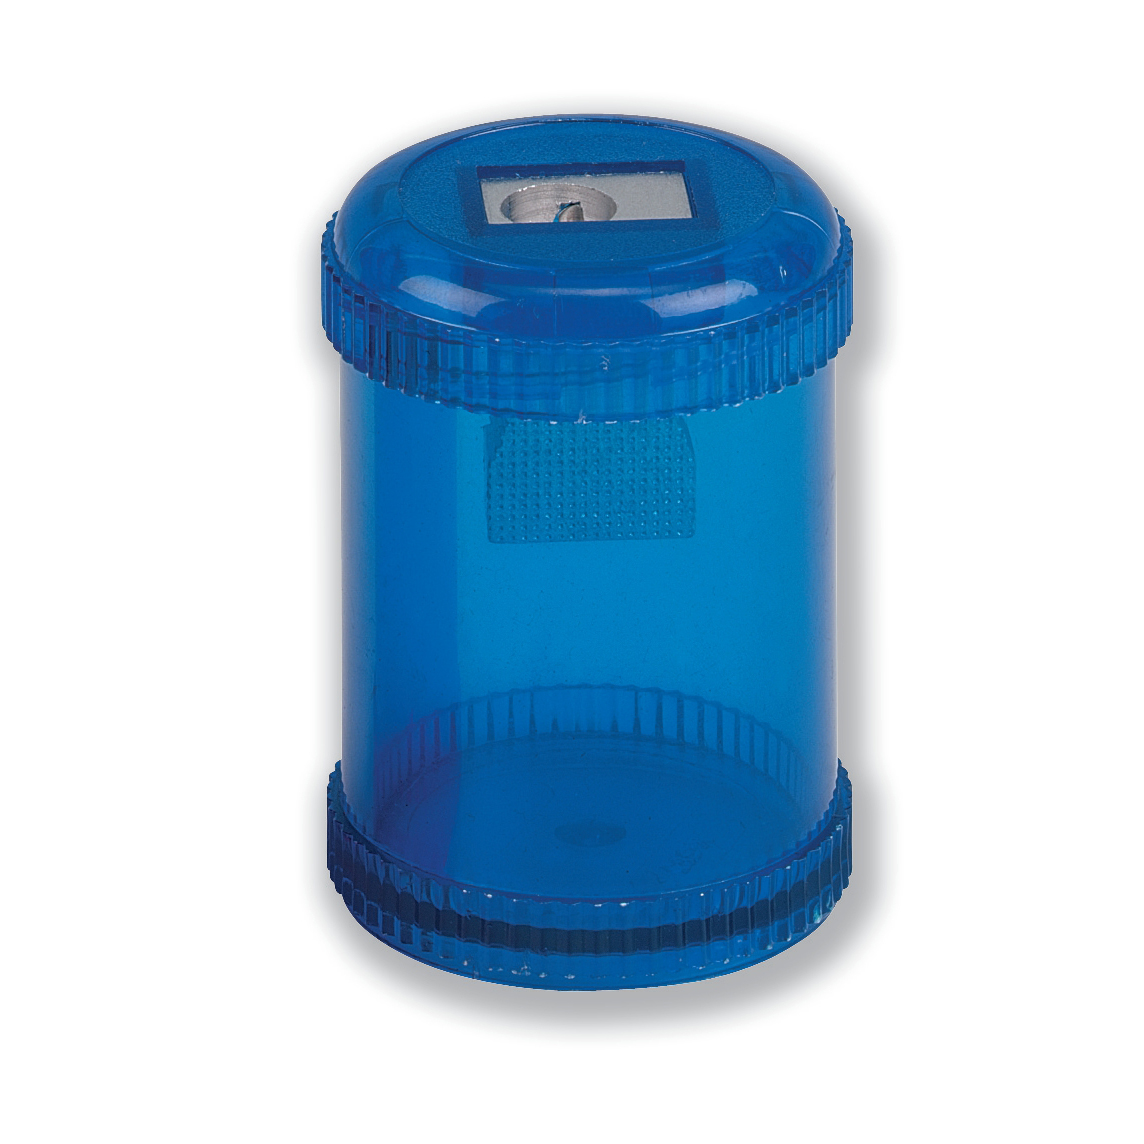 Image for 5 Star Pencil Sharpener Plastic Canister Maximum Pencil Diameter 8mm 1 Hole Coloured